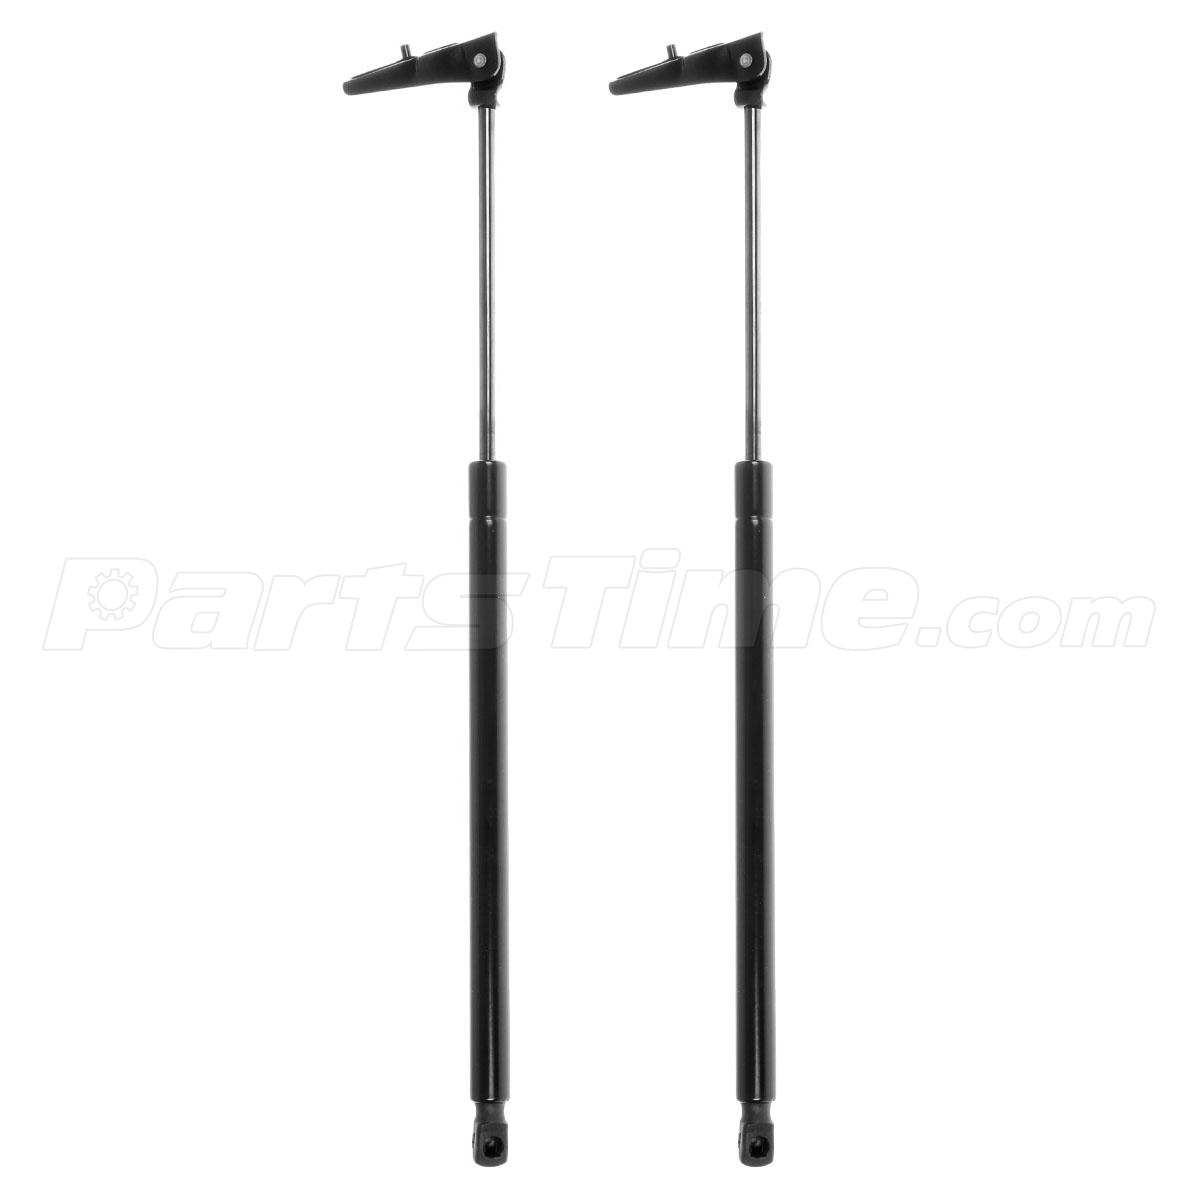 Toyota Celica With Rebuildable Front Struts 1994: 1Pair Rear Hatch Lift Supports Shocks Struts Fits 1994